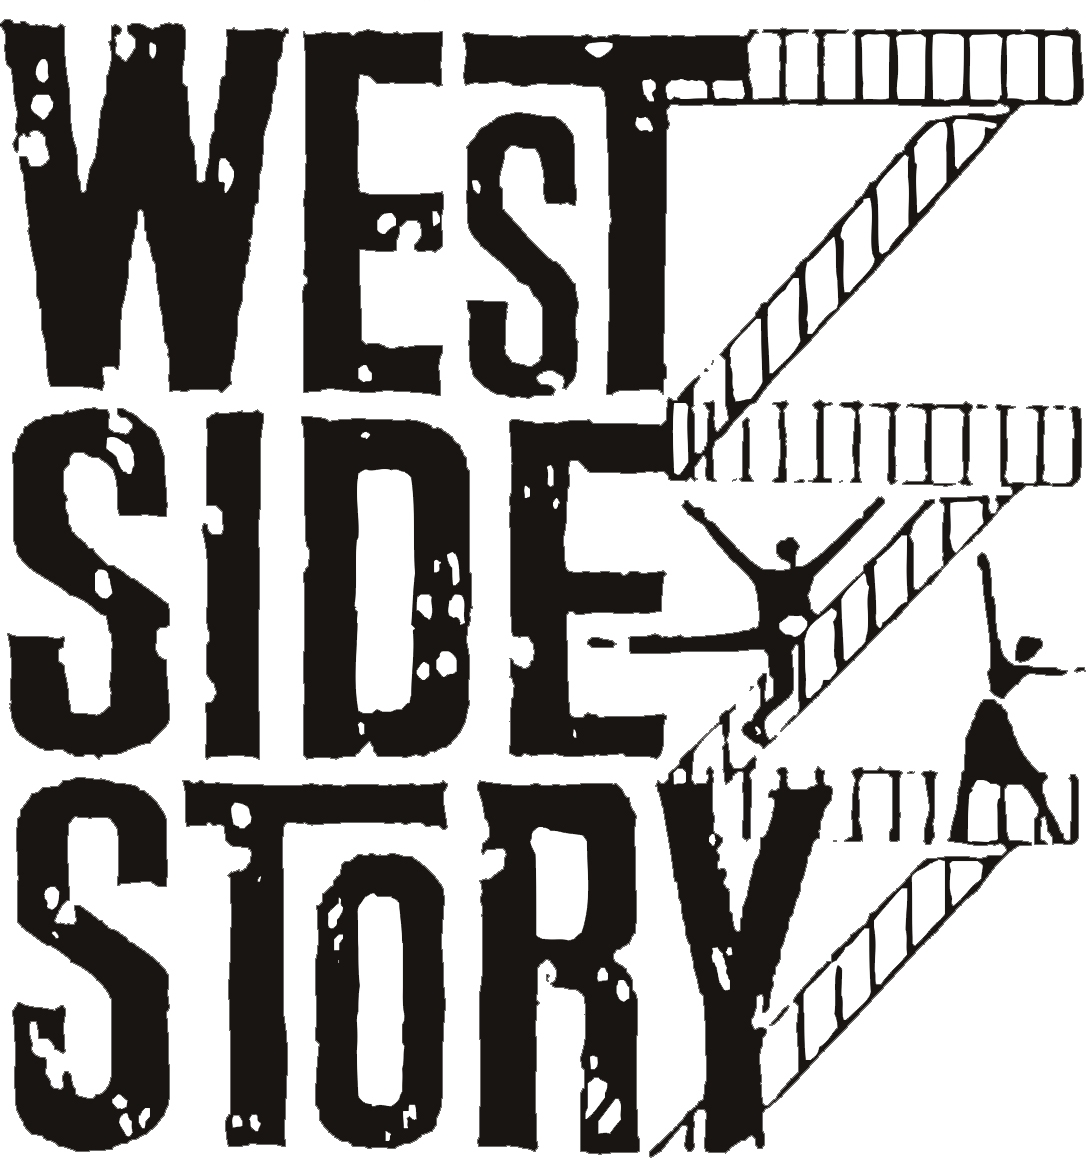 """West Side Story… back on Broadway where it belongs""  I fell in love with ""West Side Story"" in high school when I was forced to watch the movie two years in a row for music theory class. When I heard that it was back on Broadway I knew it was something that I couldn't miss. My girlfriend, who is much more into broadway than I, would feverishly mock me for ""West Side Story"" being one of my favorites because it involves ""tough guy gangs…that dance."" However, she was cool enough to surprise me with tickets to the show. After the initial introduction to the gangs dancing in the beginning of the first act, and us sharing giggles about it, the story as well as the music really took off. I fell just as in love with the live performances as I did with the music 10 years ago. The story was more poignant and touching than ever before considering I've now lived in NYC for three years. All in all my favorite Broadway experience ever. I must say that seeing the updated revival is the only way to see this story. The 1961 movie version is fine. But, a little too cheesy in comparison to the brilliance of the live theater version. If you see one Broadway classic while in the city this summer, go see ""West Side Story""  - Wren"